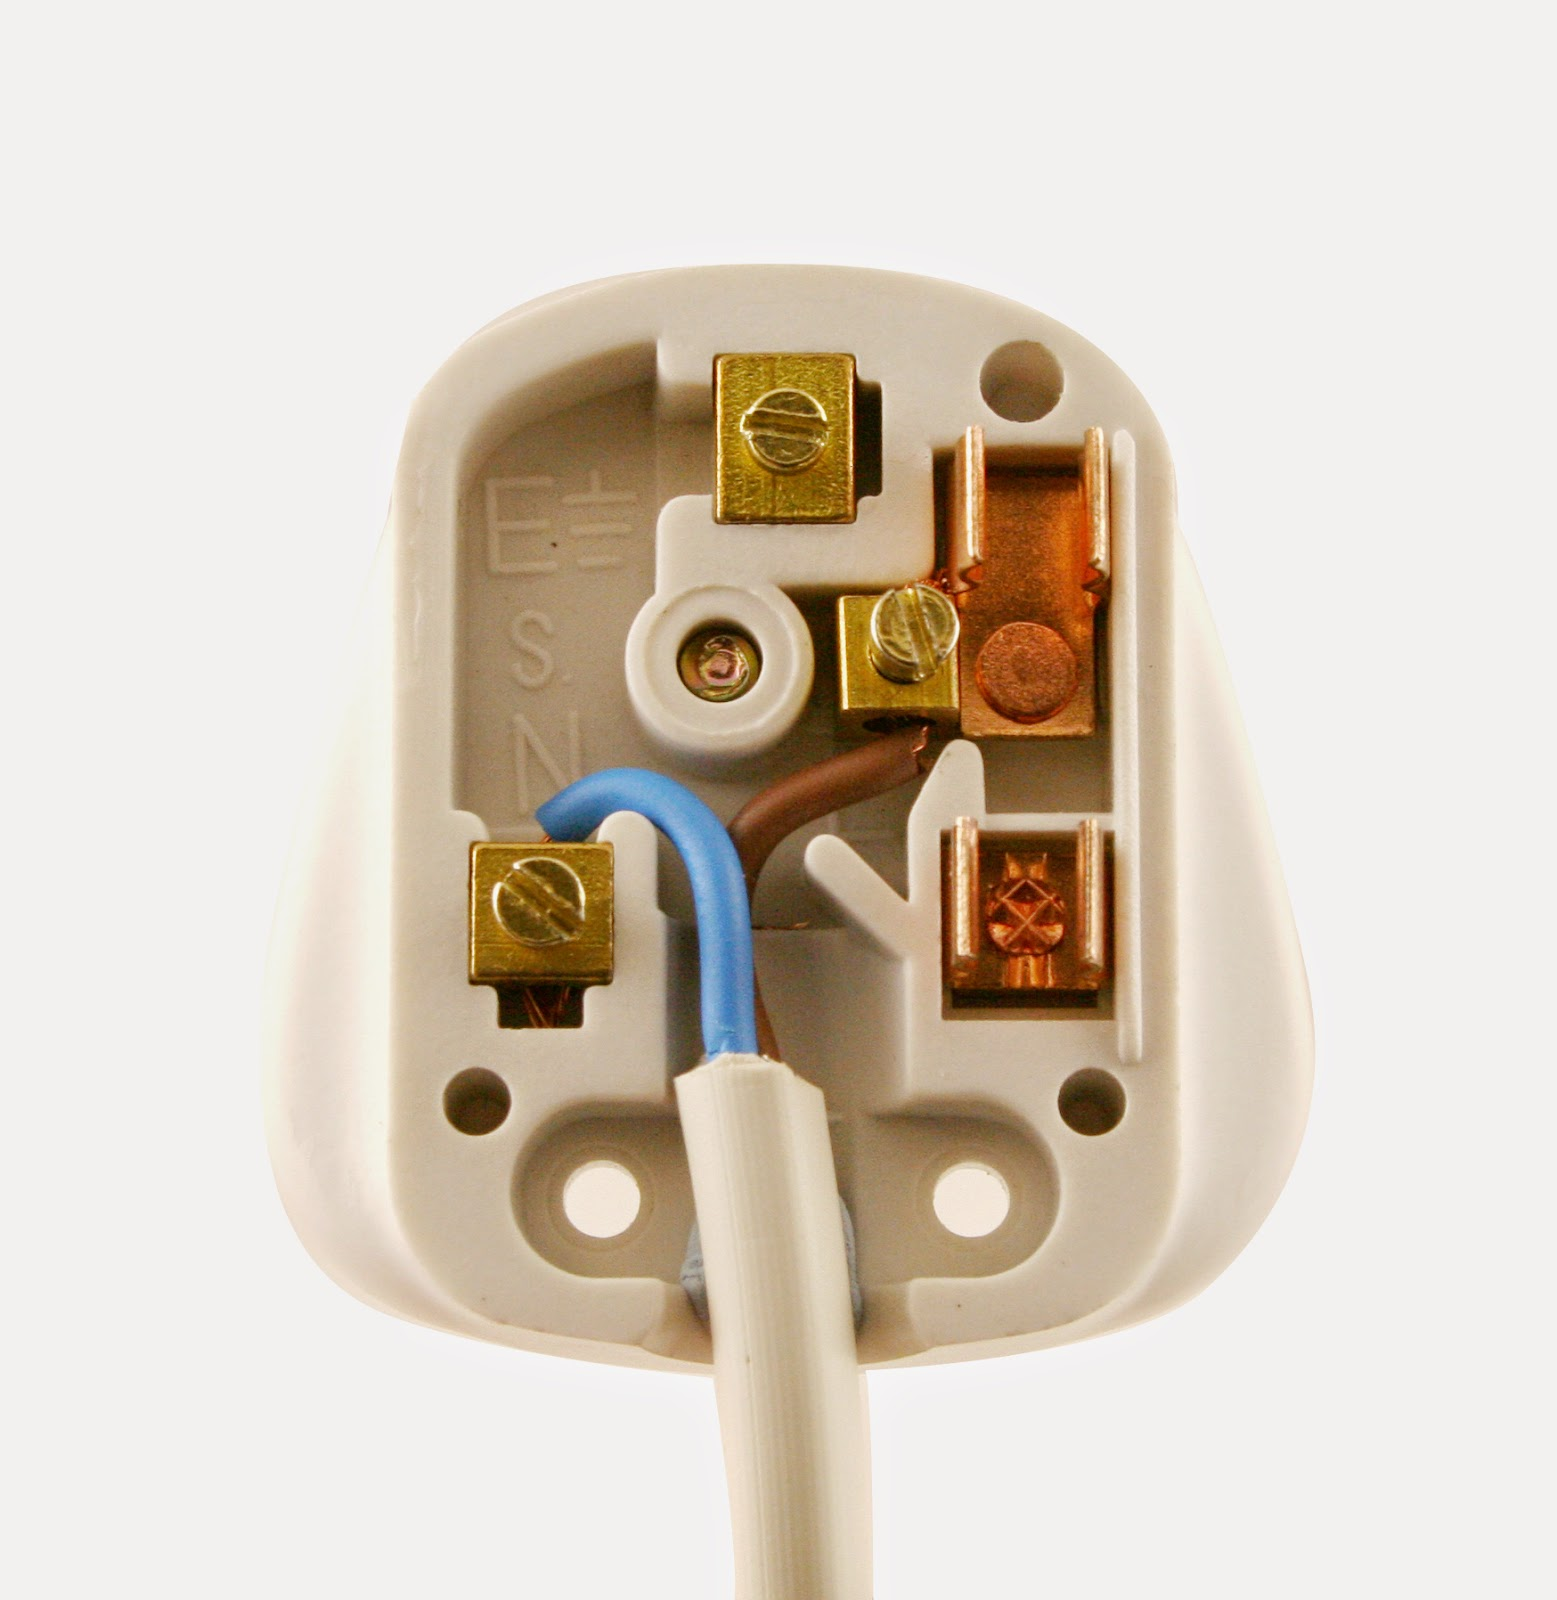 charity shops selling used electrical appliances step by step rh charity shops blogspot com House Wiring Plug wiring a plug without earth